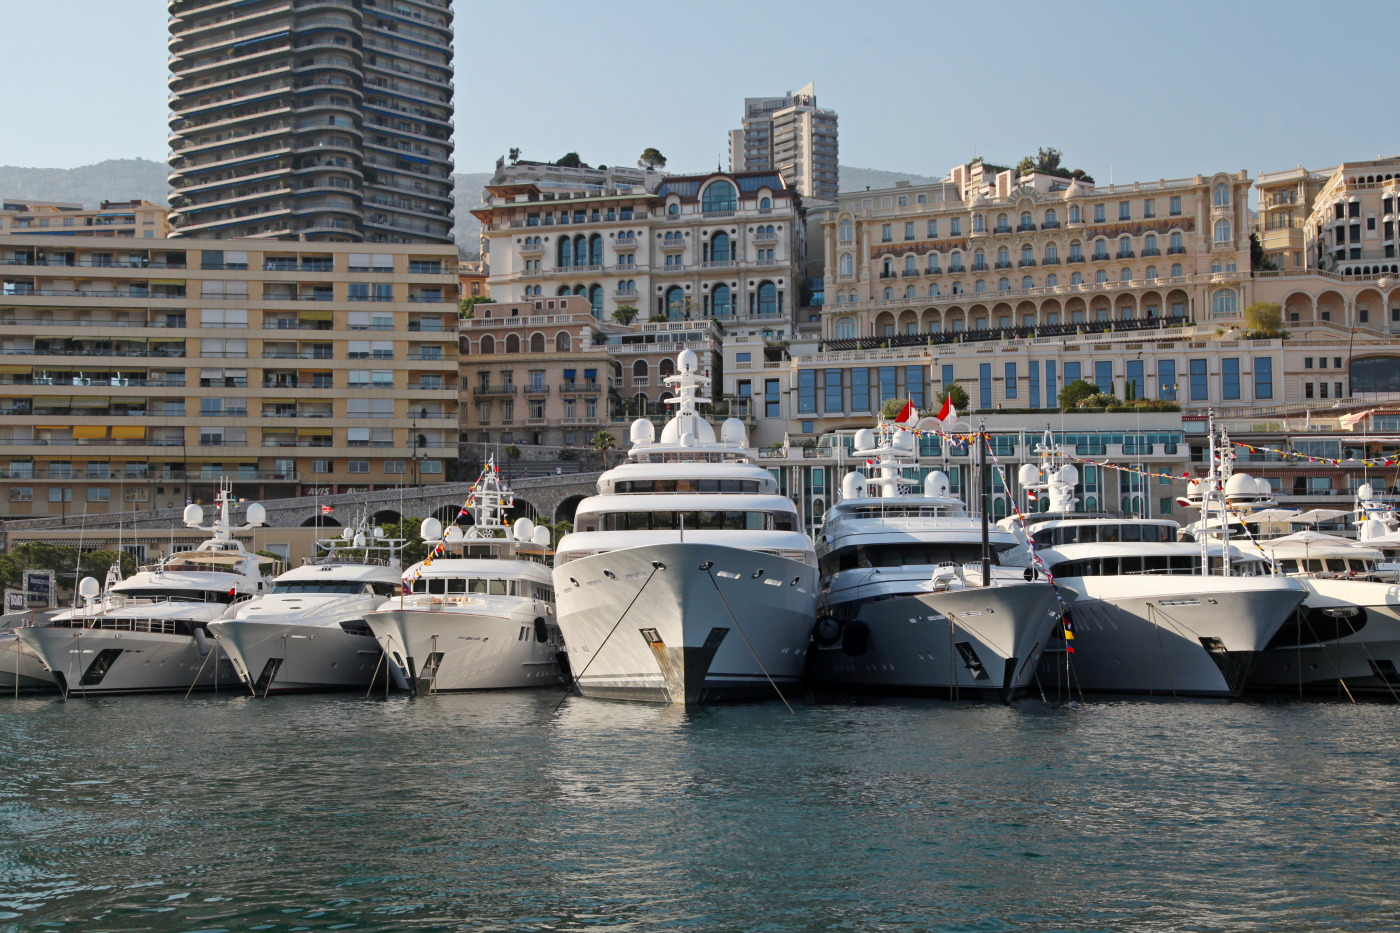 The-Rendezvous-in-Monaco-2012-with-10-amazing-superyachts-on-display-Credit-Thierry-Ameller (1)